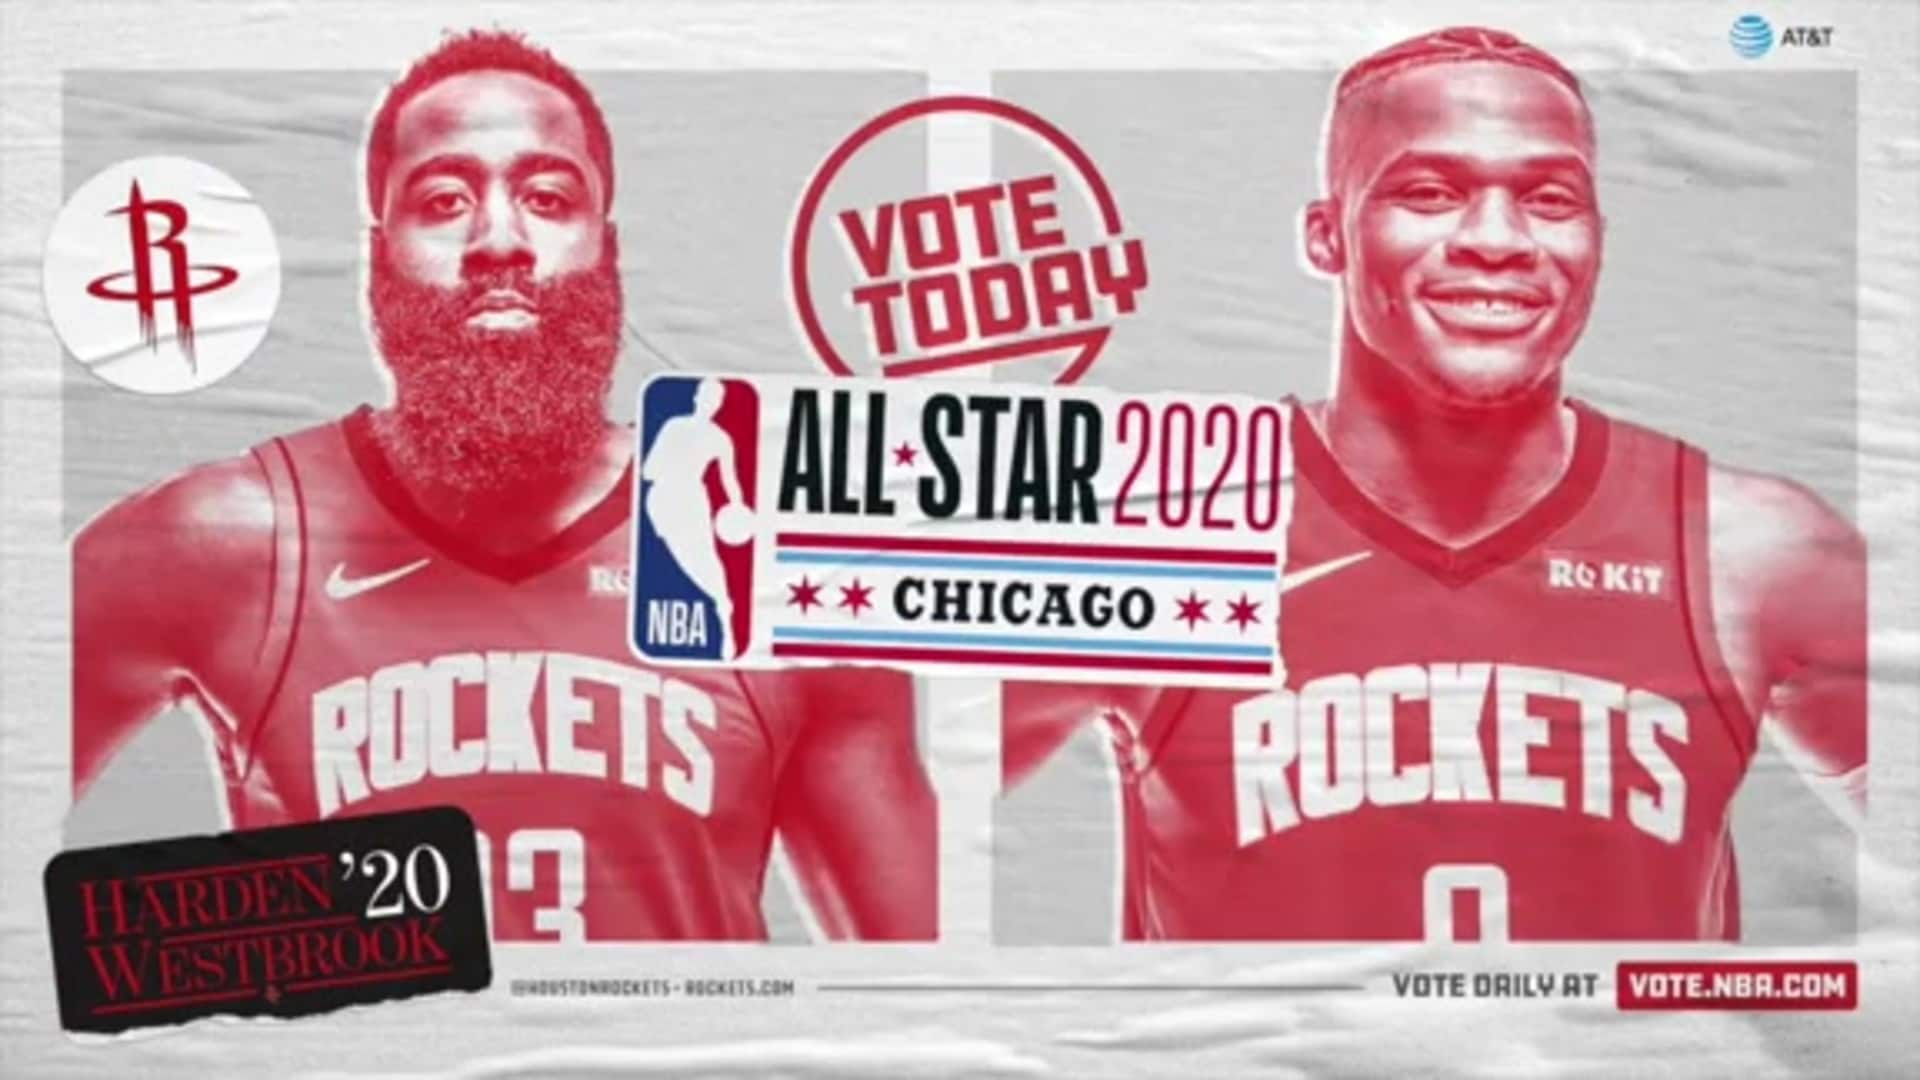 Vote Rockets for All-Star 2020